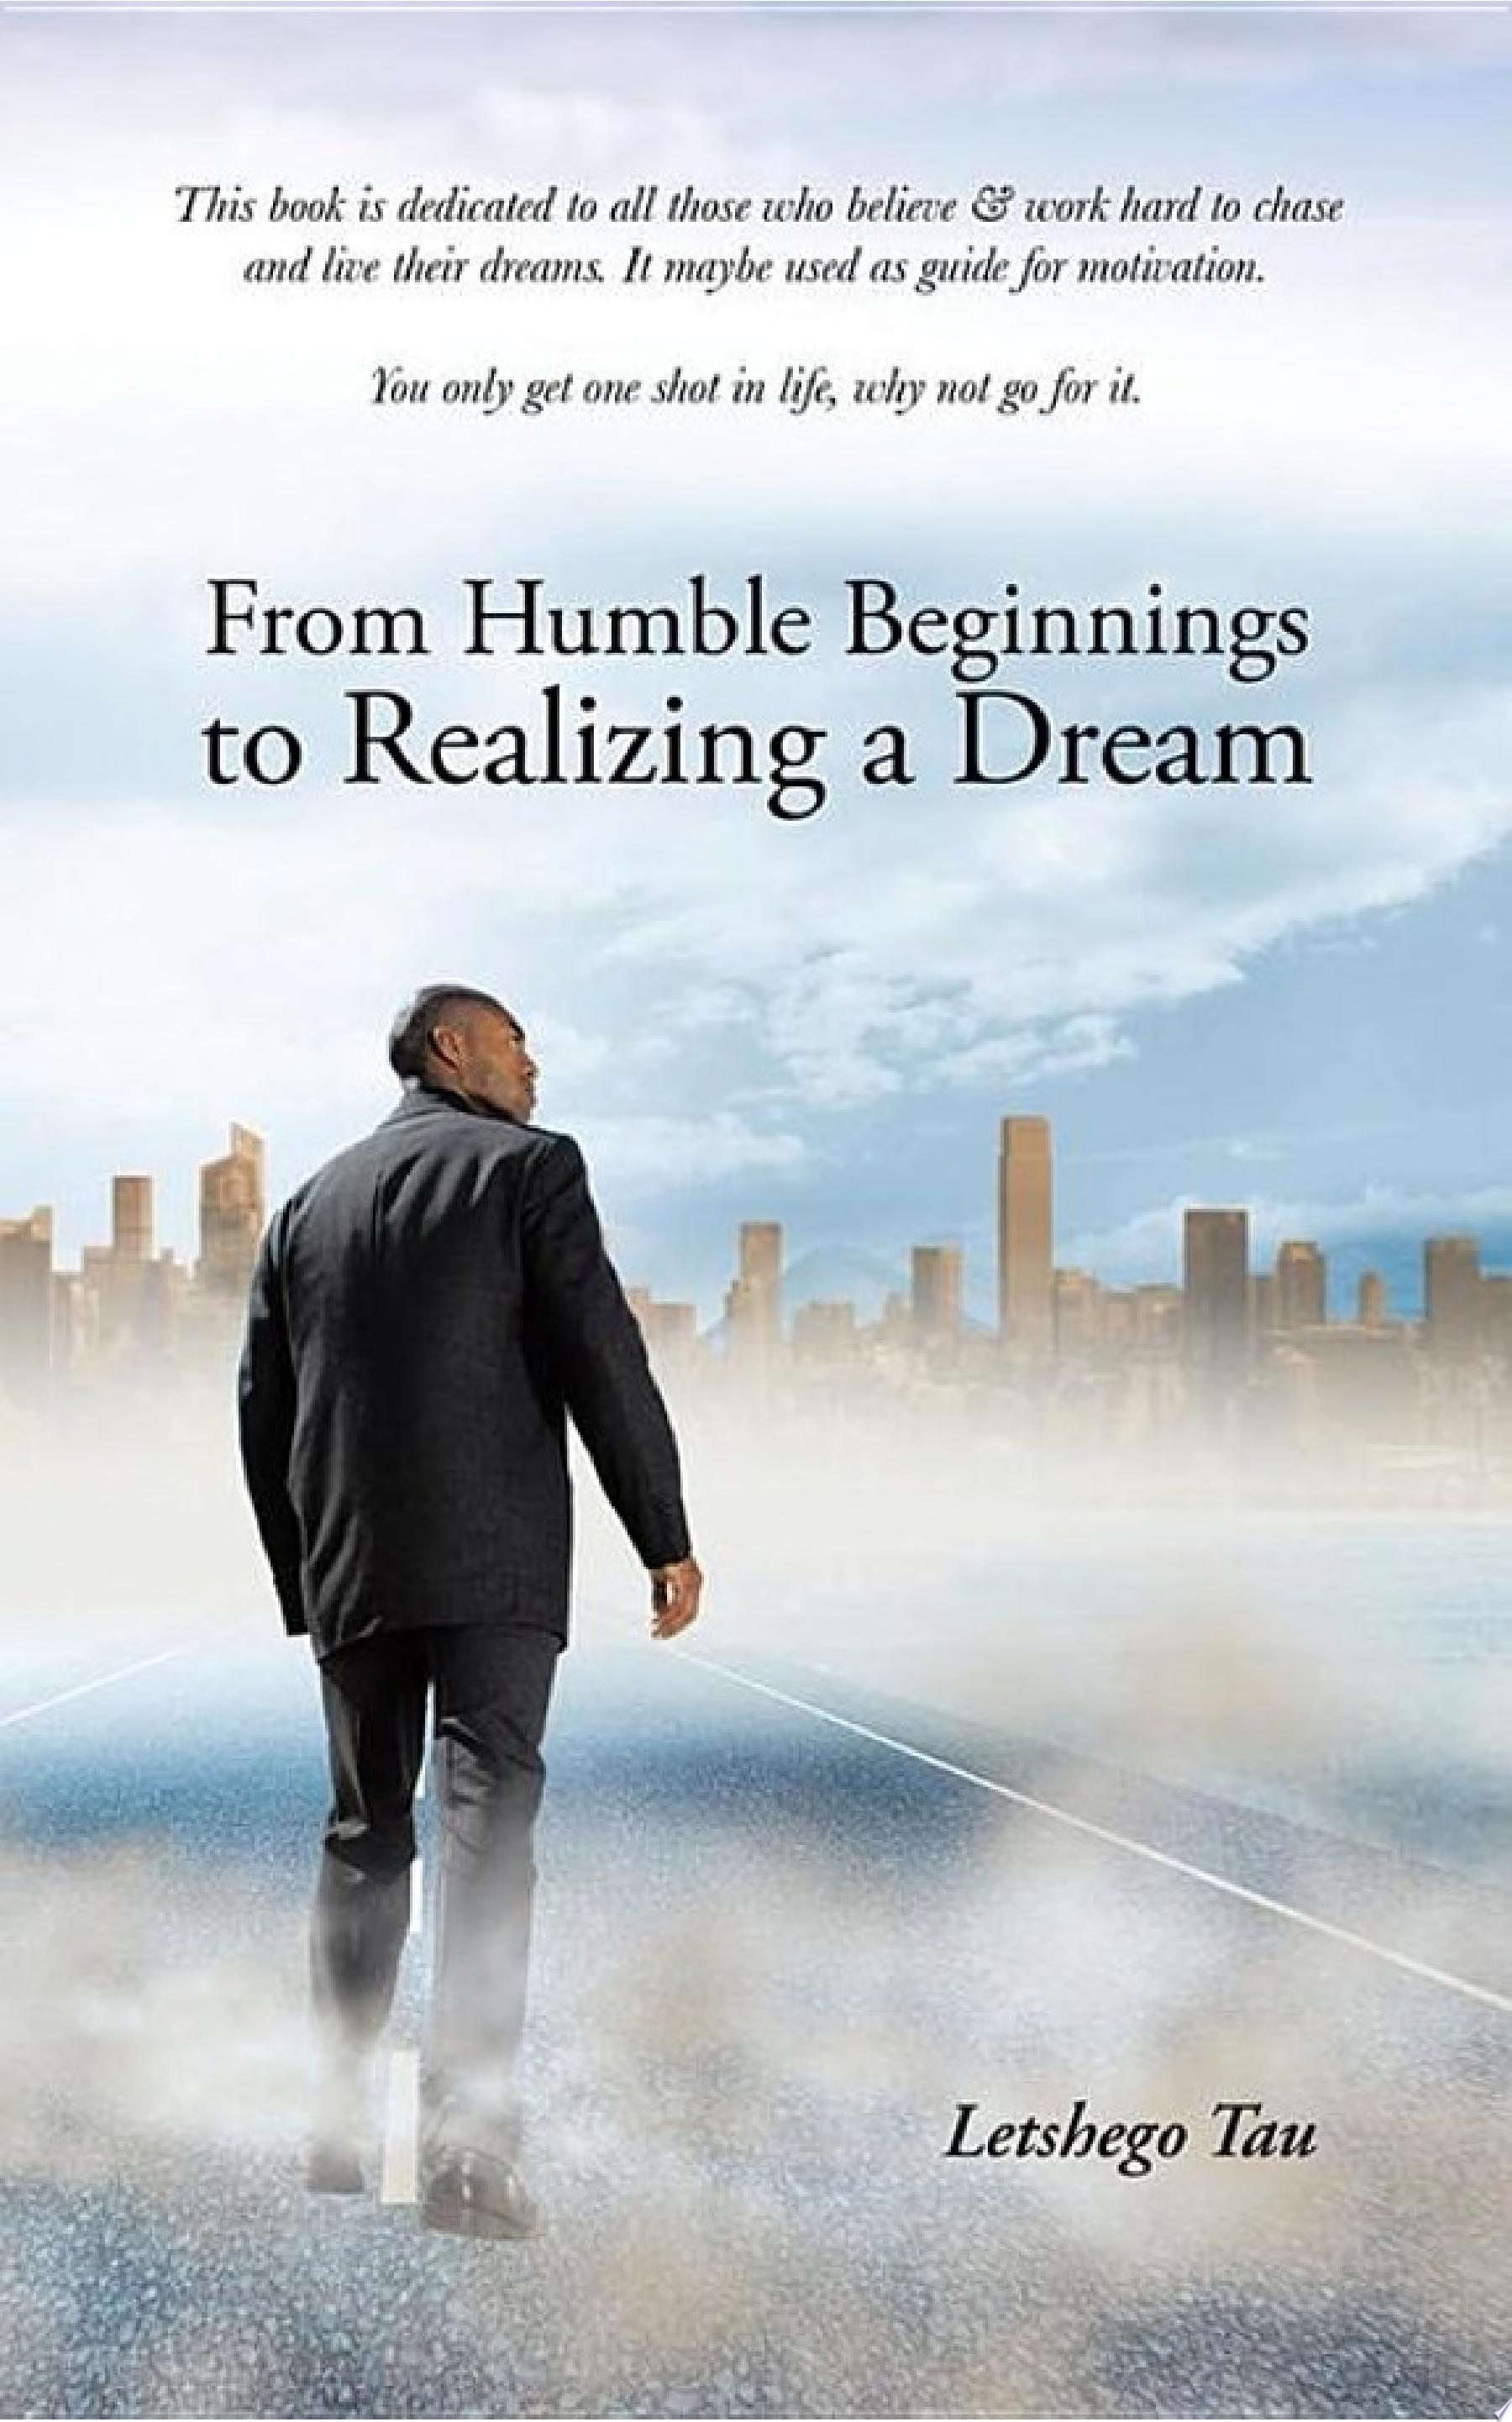 From Humble Beginnings to Realizing a Dream